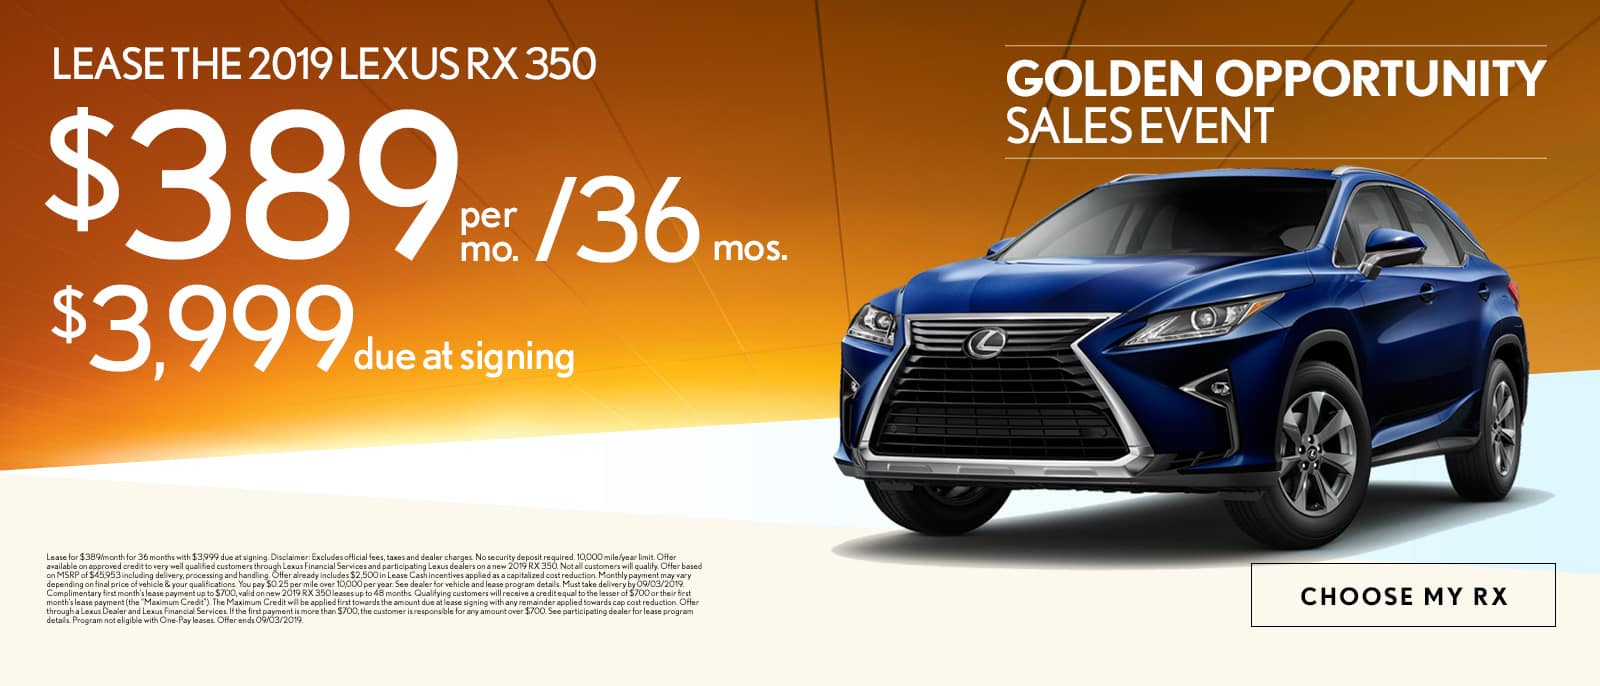 Lease the 2019 Lexus RX 350 for $389 per month for 36 months with $3,999 due at signing - Choose my RX